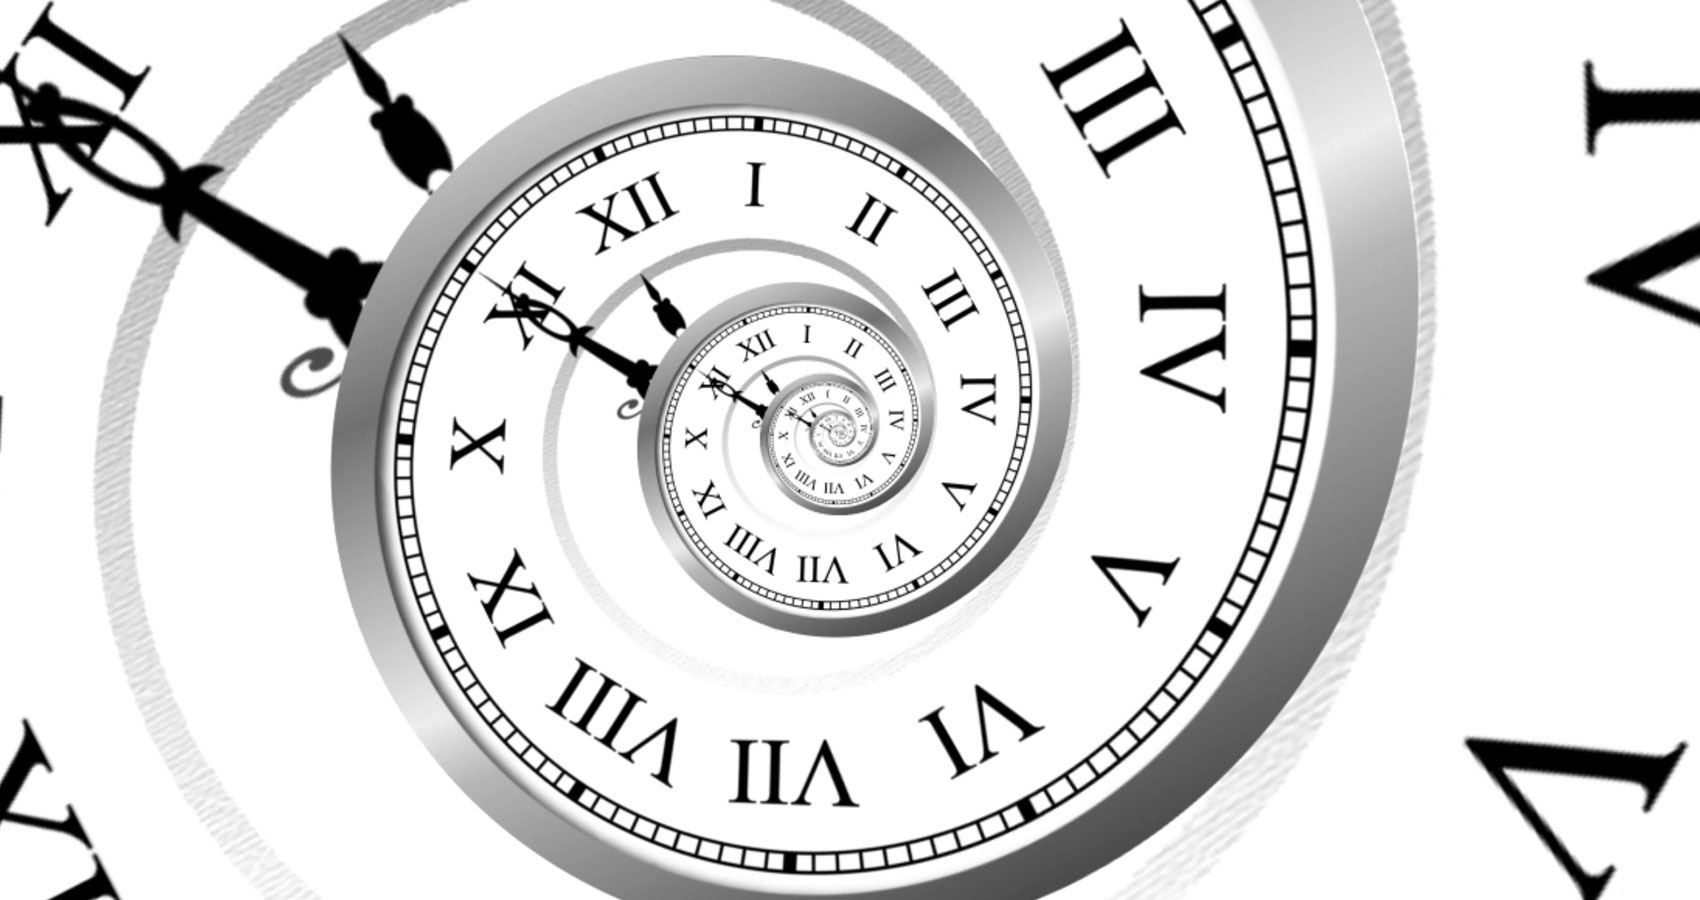 Tick-Tock by Collaborating Minds of Anne G & J.M.G. at Spillwords.com